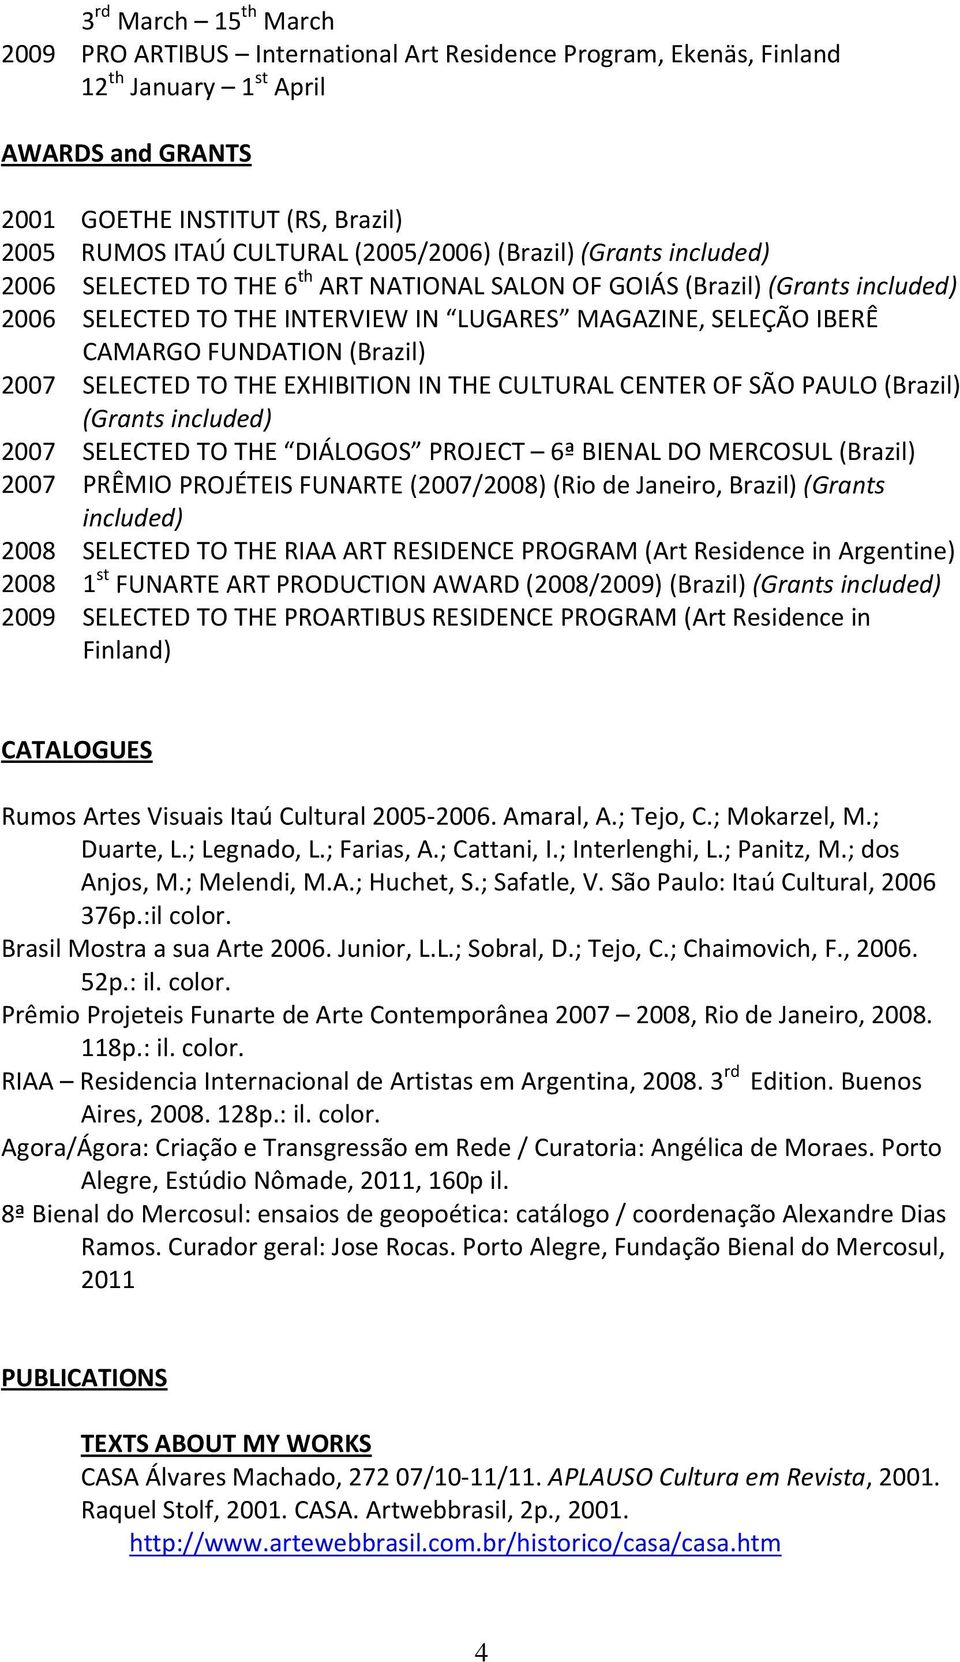 FUNDATION (Brazil) 2007 SELECTED TO THE EXHIBITION IN THE CULTURAL CENTER OF SÃO PAULO (Brazil) (Grants included) 2007 SELECTED TO THE DIÁLOGOS PROJECT 6ª BIENAL DO MERCOSUL (Brazil) 2007 PRÊMIO